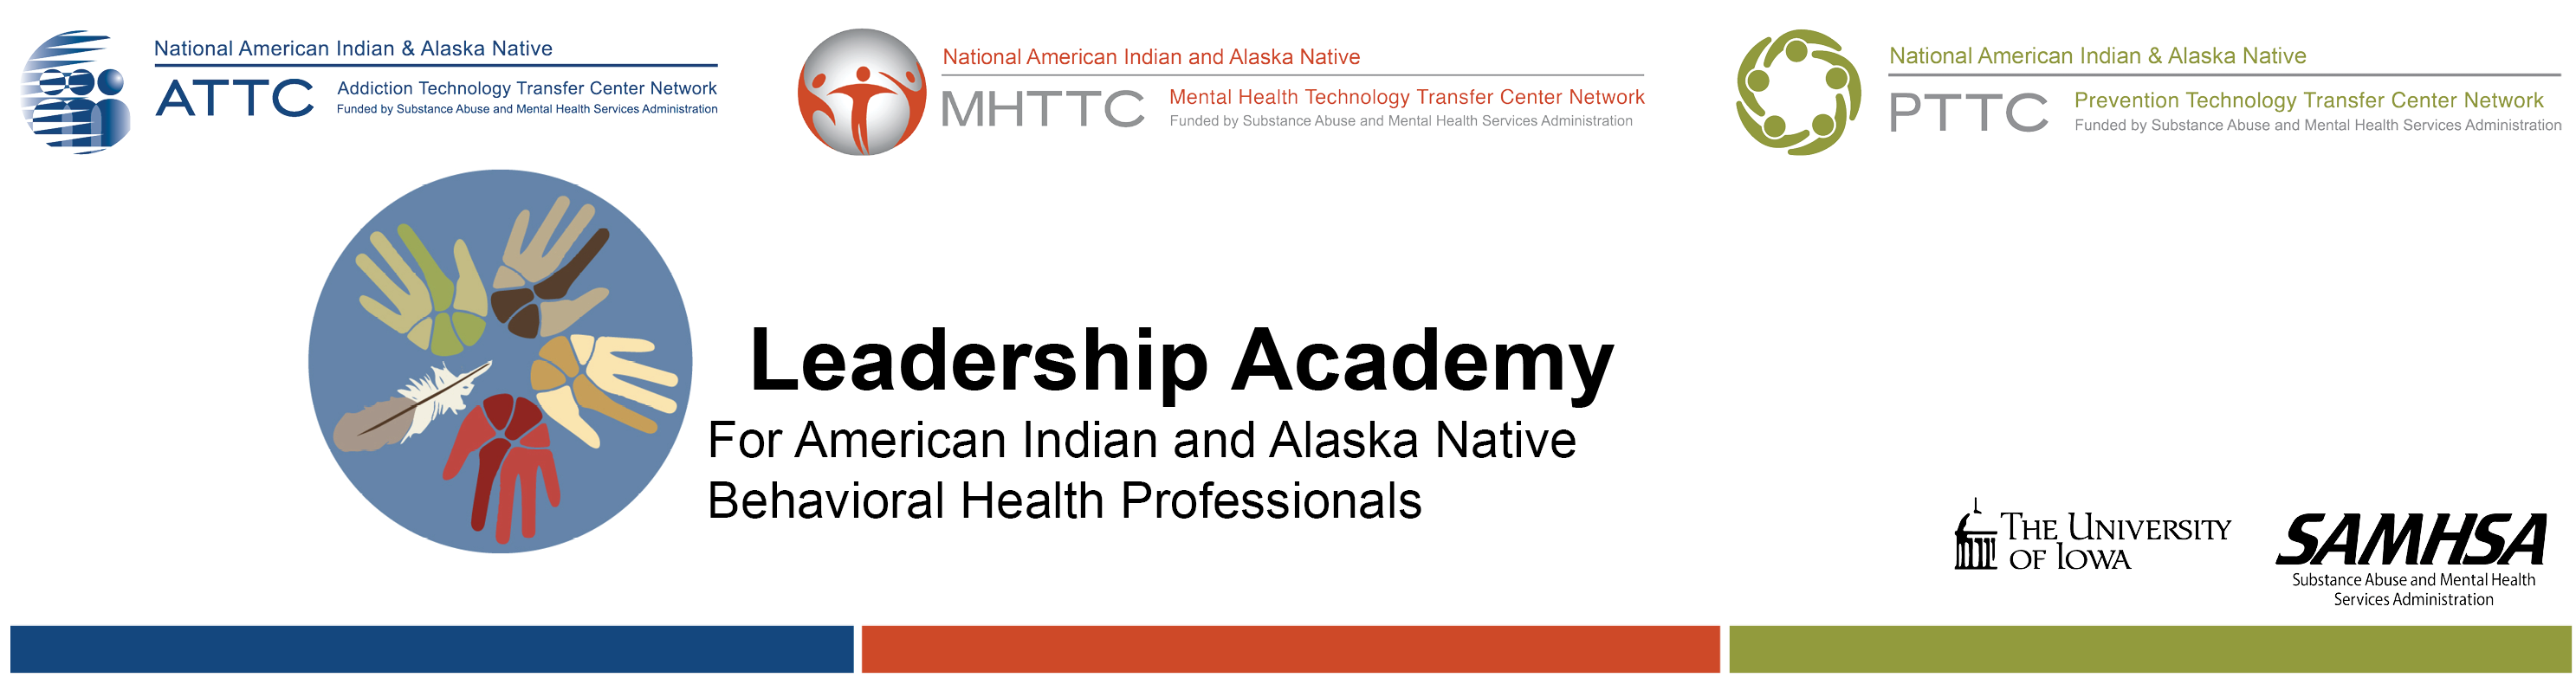 Leadership Academy: For American Indian and Alaska Native Behavioral Health Professionals